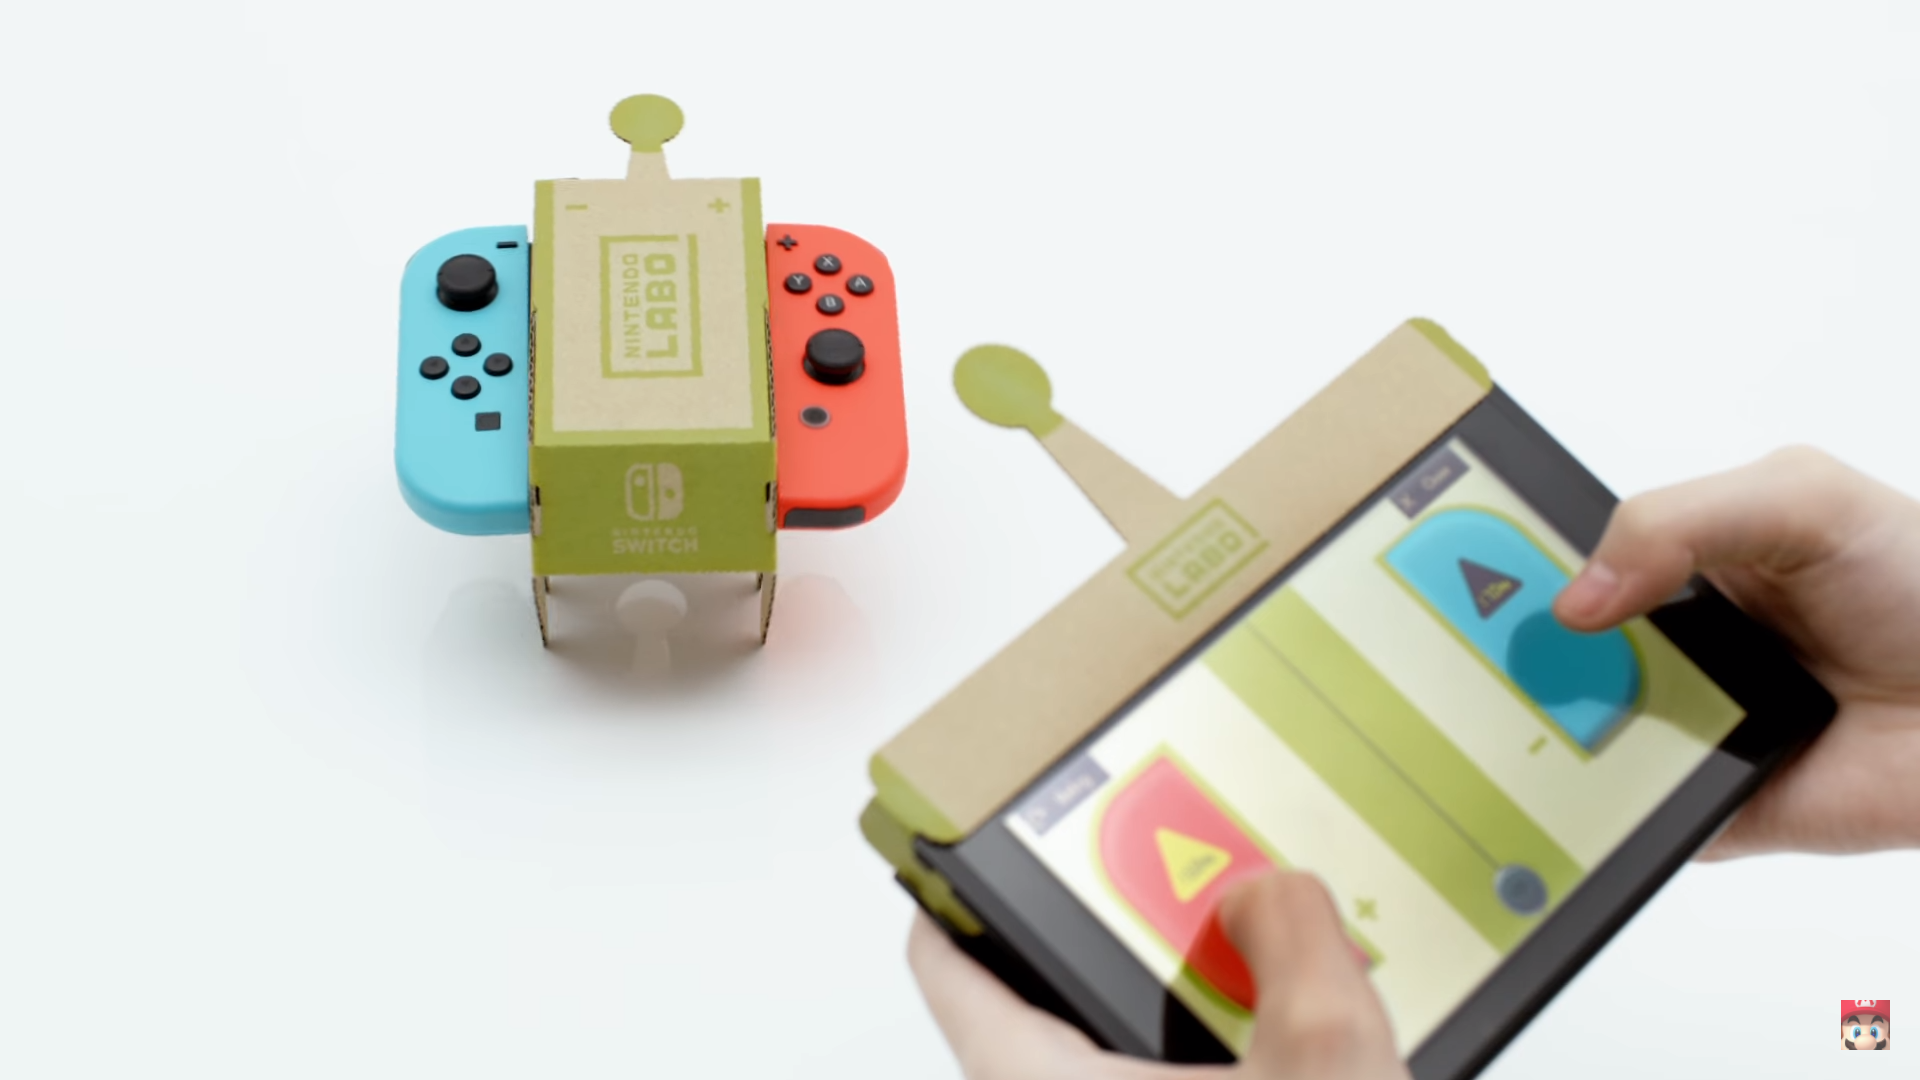 Above Is Labo like building a real robot? No but that's not the